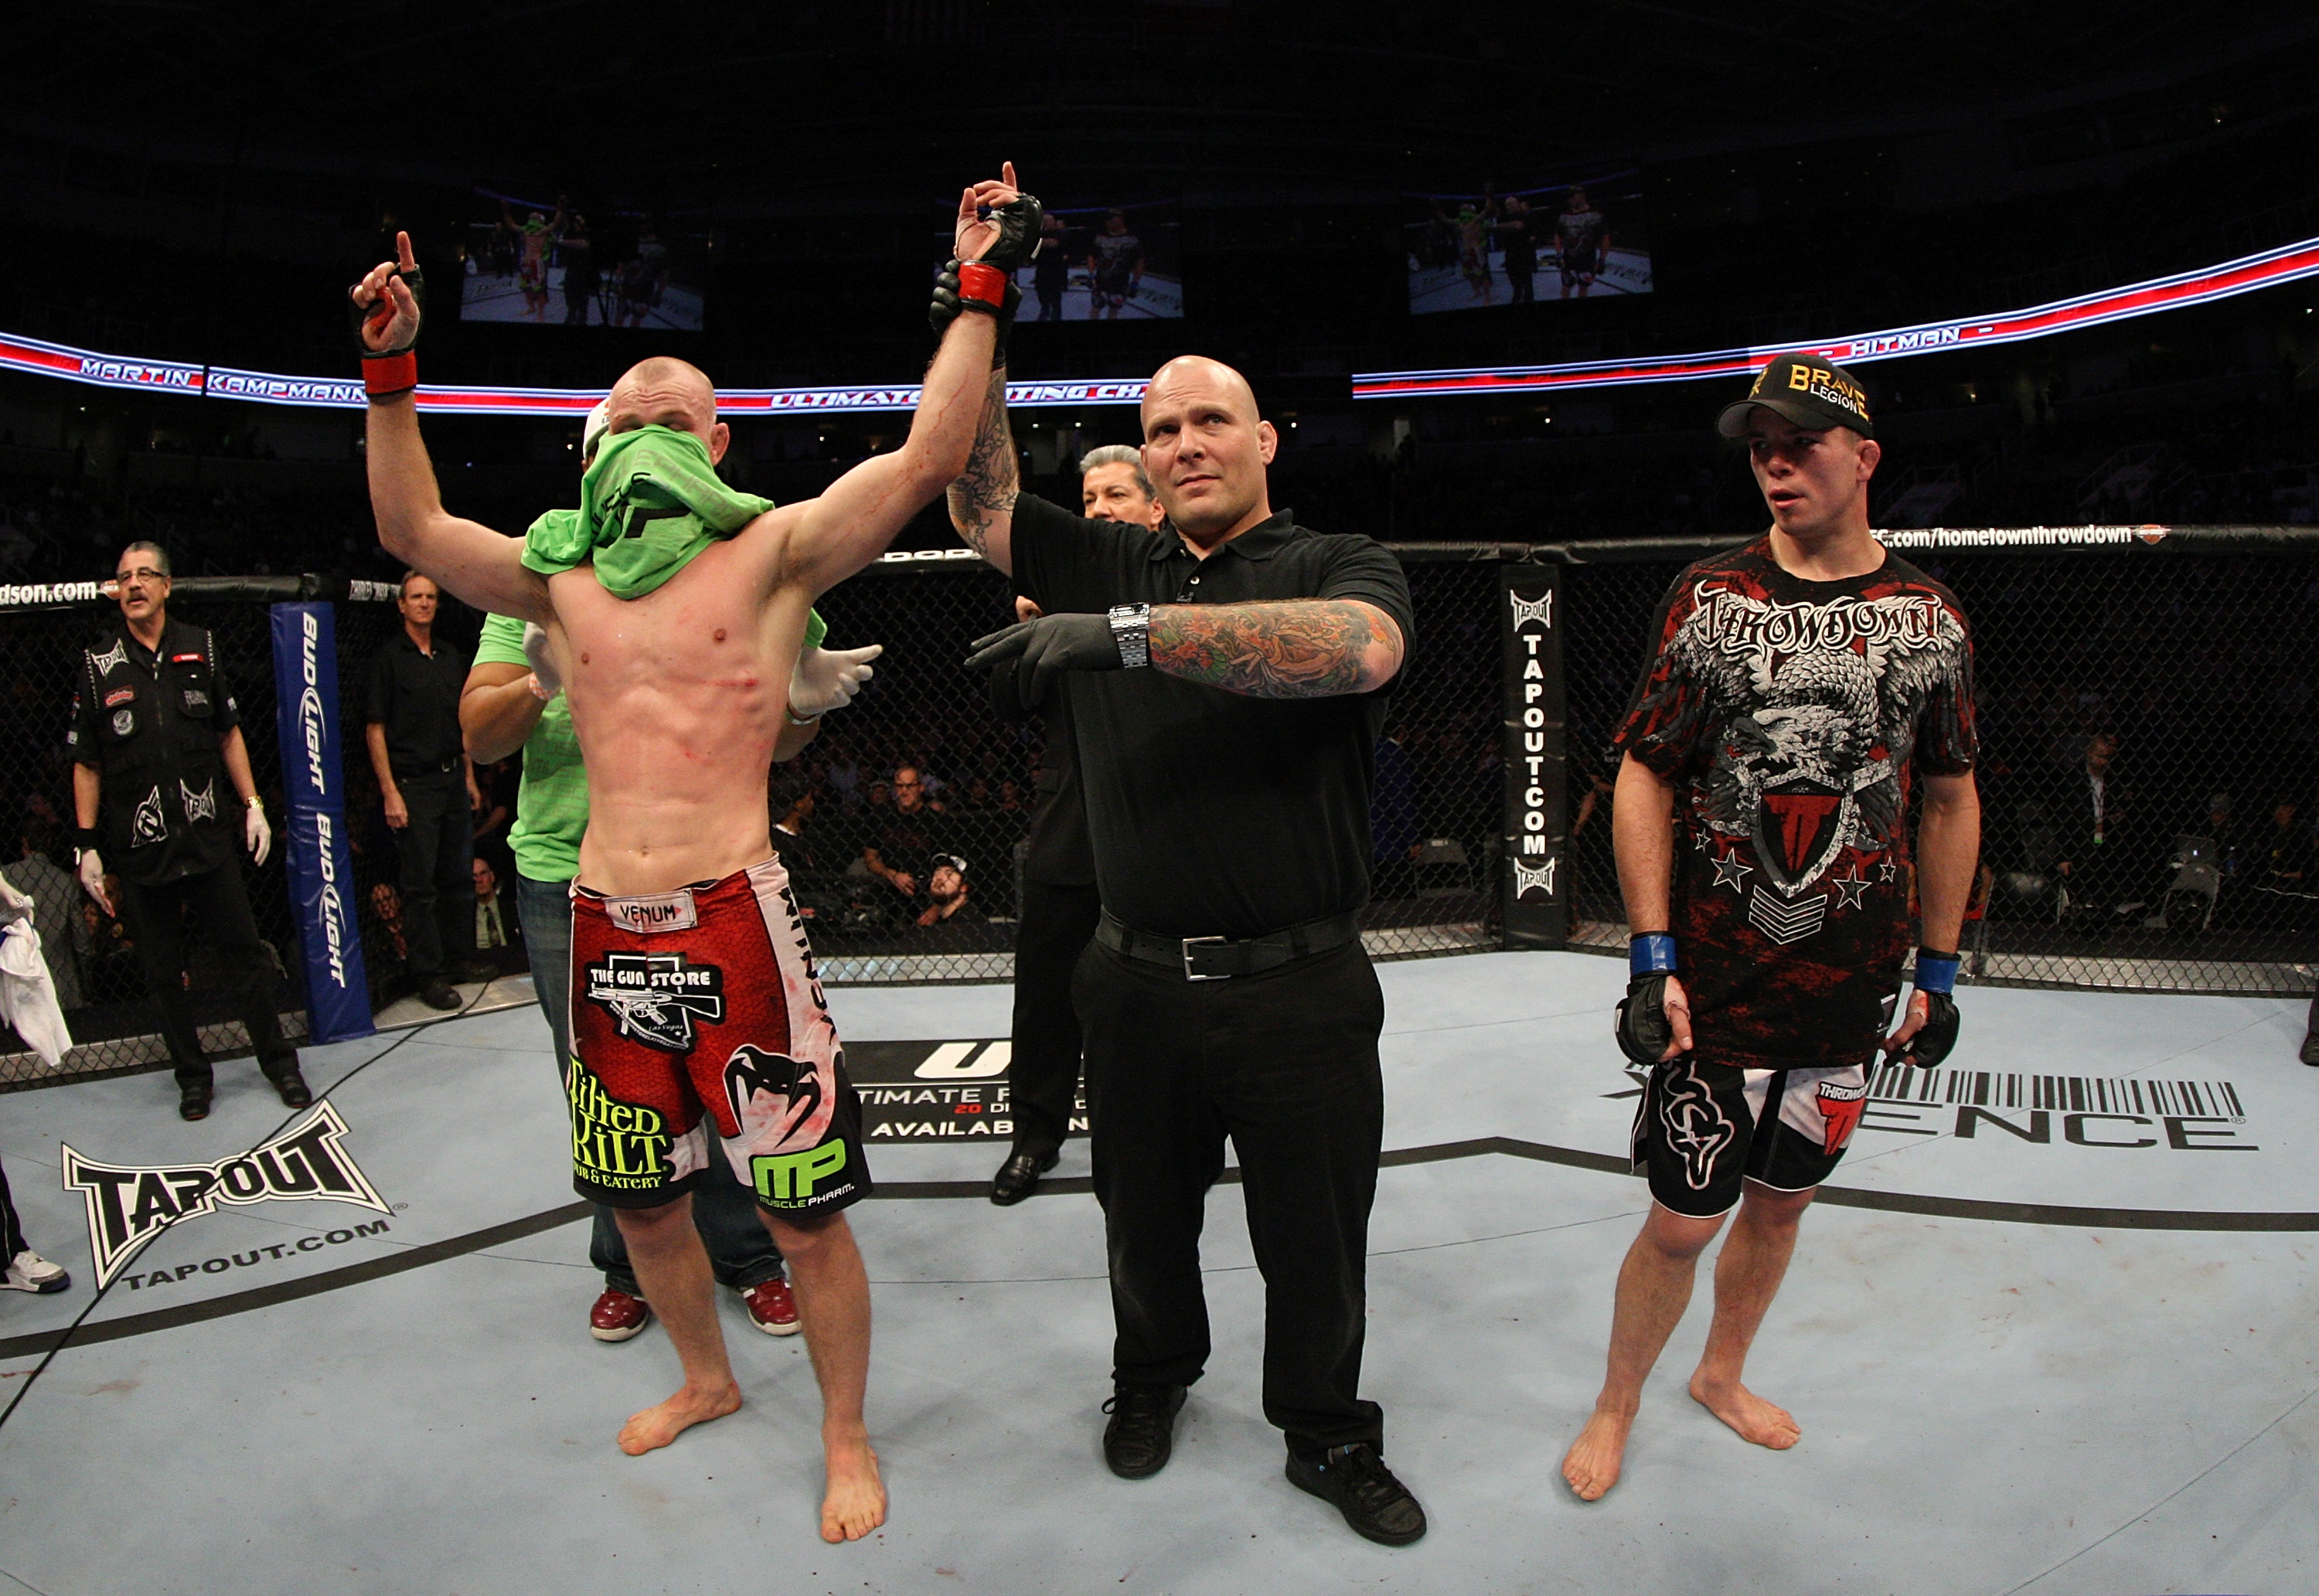 SAN JOSE, CA - NOVEMBER 19: (L-R) Martin Kampmann celebrates defeating Rick Story during an UFC Welterweight bout at the HP Pavillion on November 19, 2011 in San Jose, California.  (Photo by Josh Hedges/Zuffa LLC/Zuffa LLC via Getty Images)